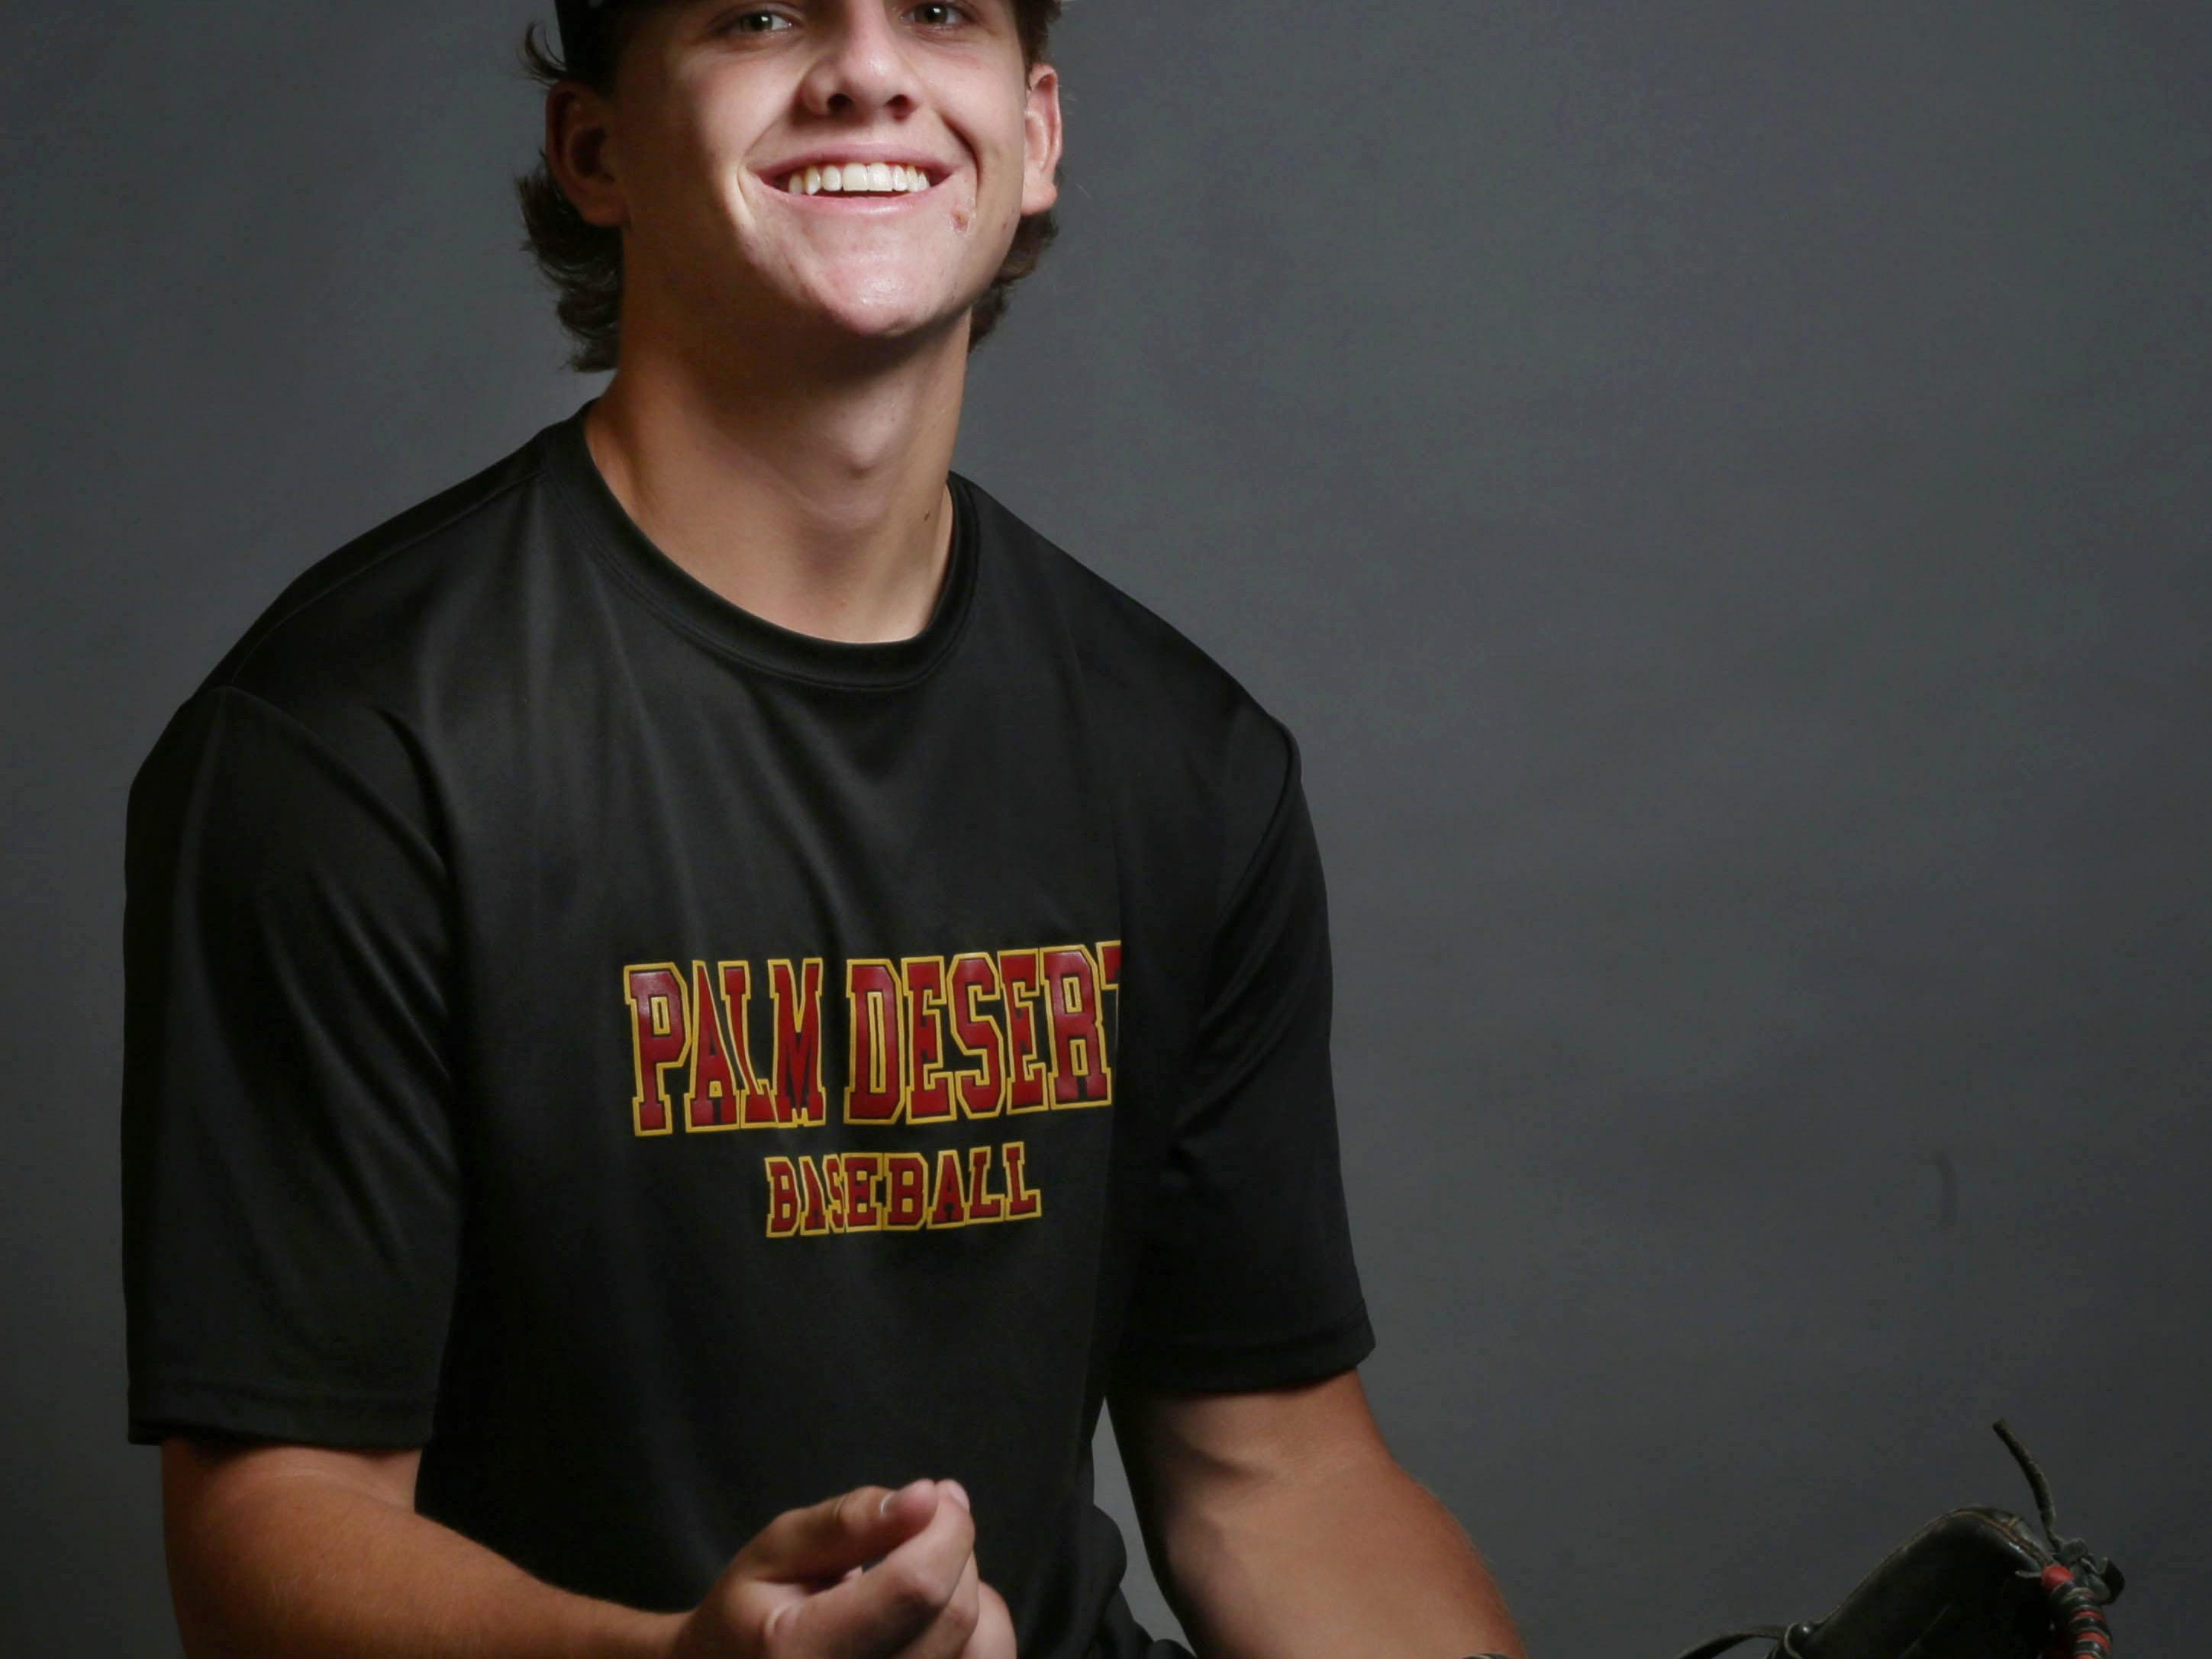 Recent Palm Desert grad Travis Moniot, a four-year letterman for the Aztecs, was named The Desert Sun's baseball player of the year for the 2015 season after taking his team to the CIF SS quarterfinals.